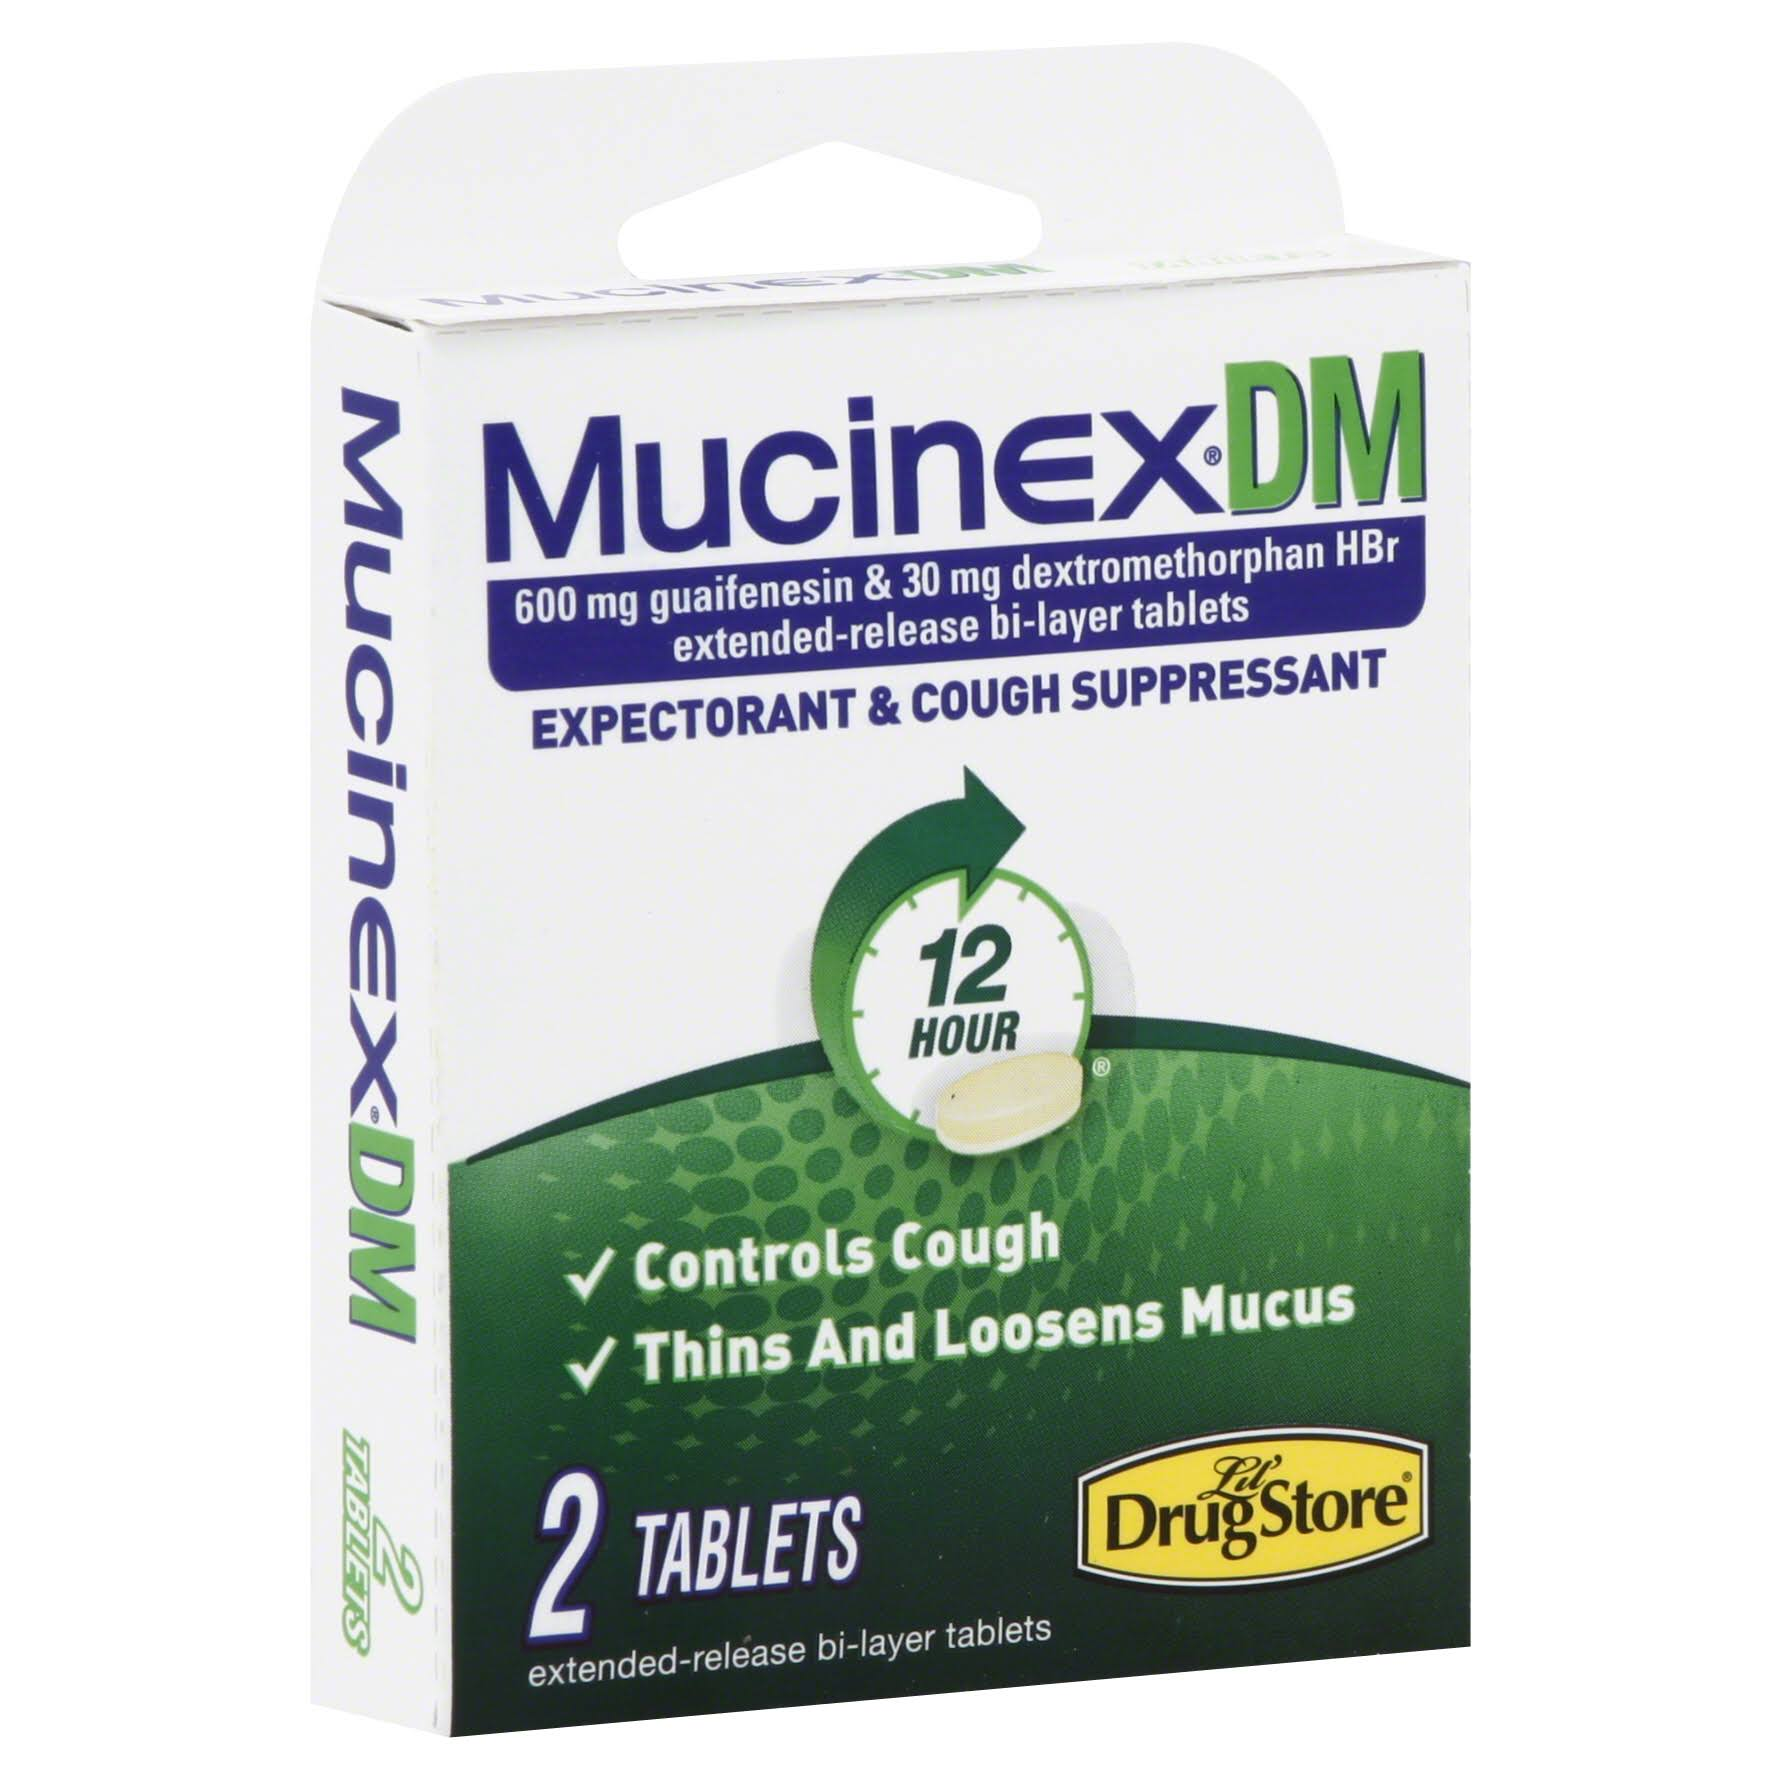 Mucinexdm Expectorant & Cough Suppressant - 2 Tablets